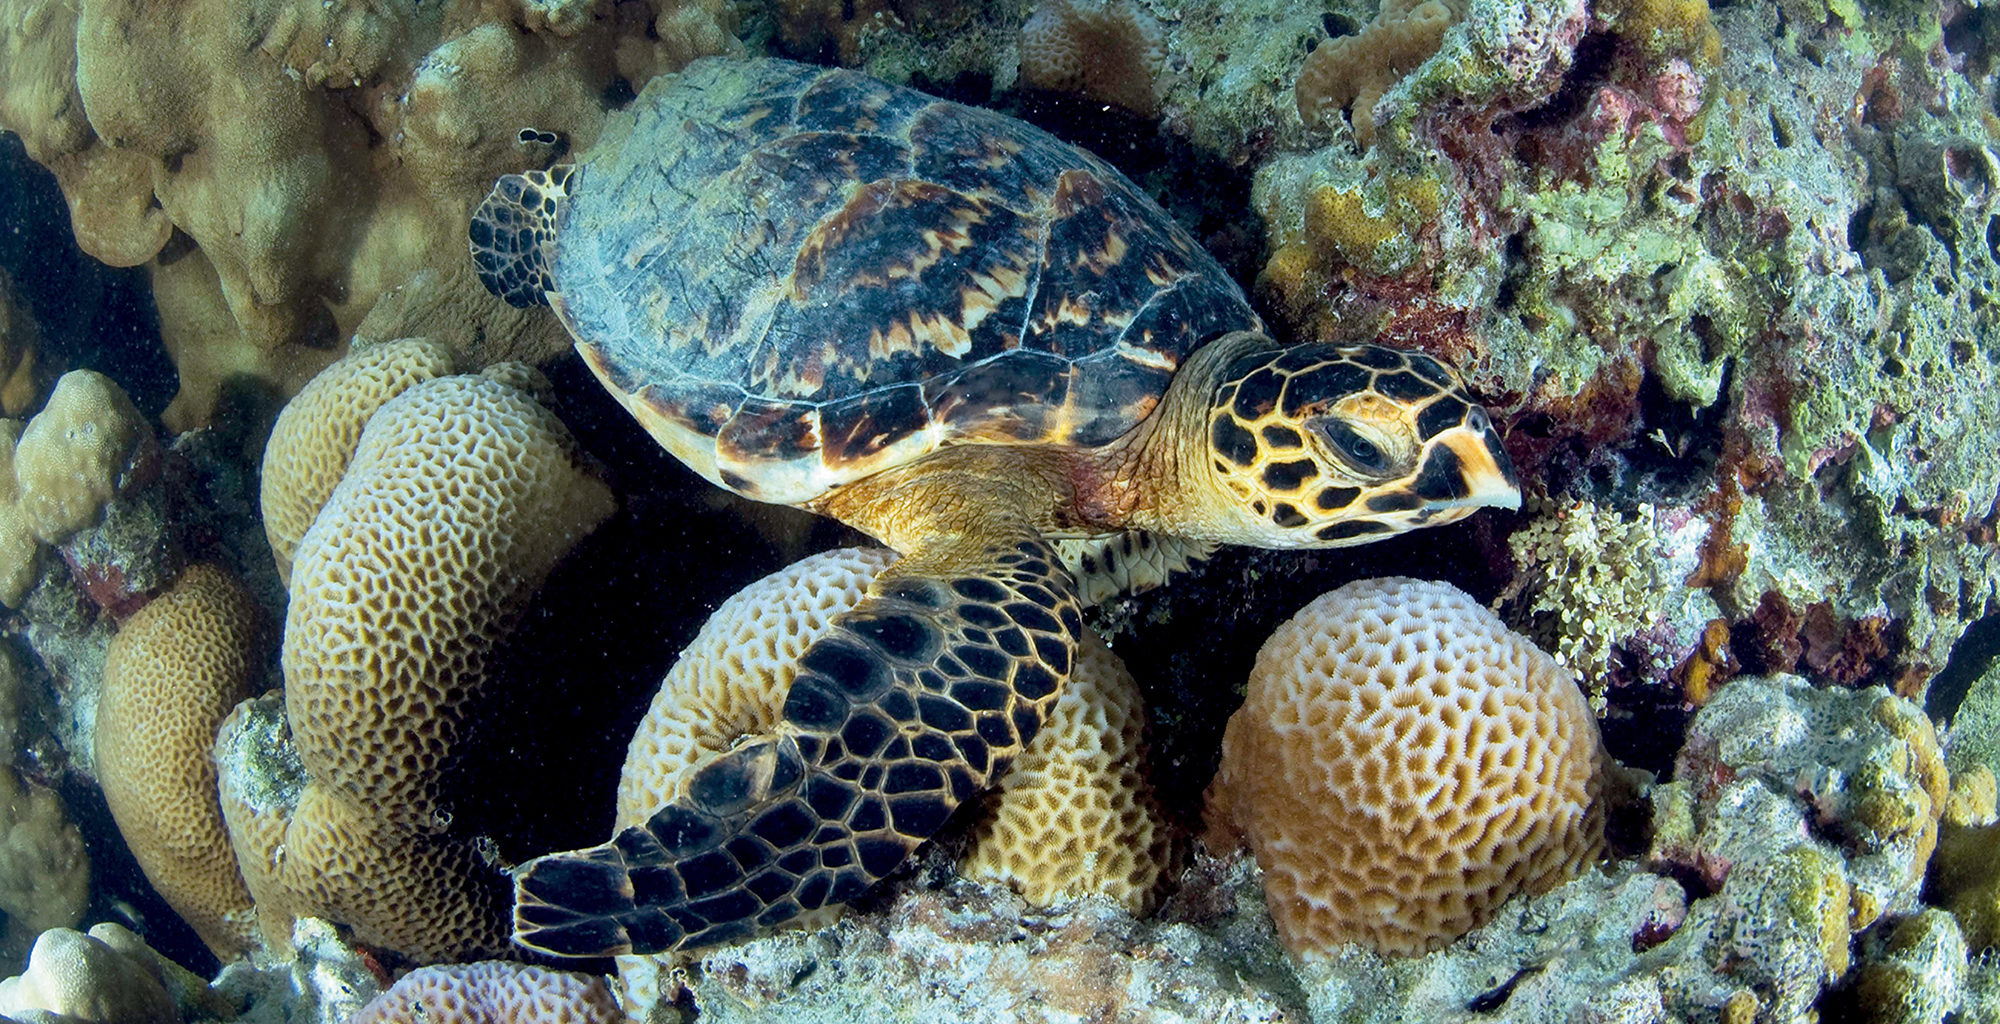 Seychelles-Private-Islands-Turtle